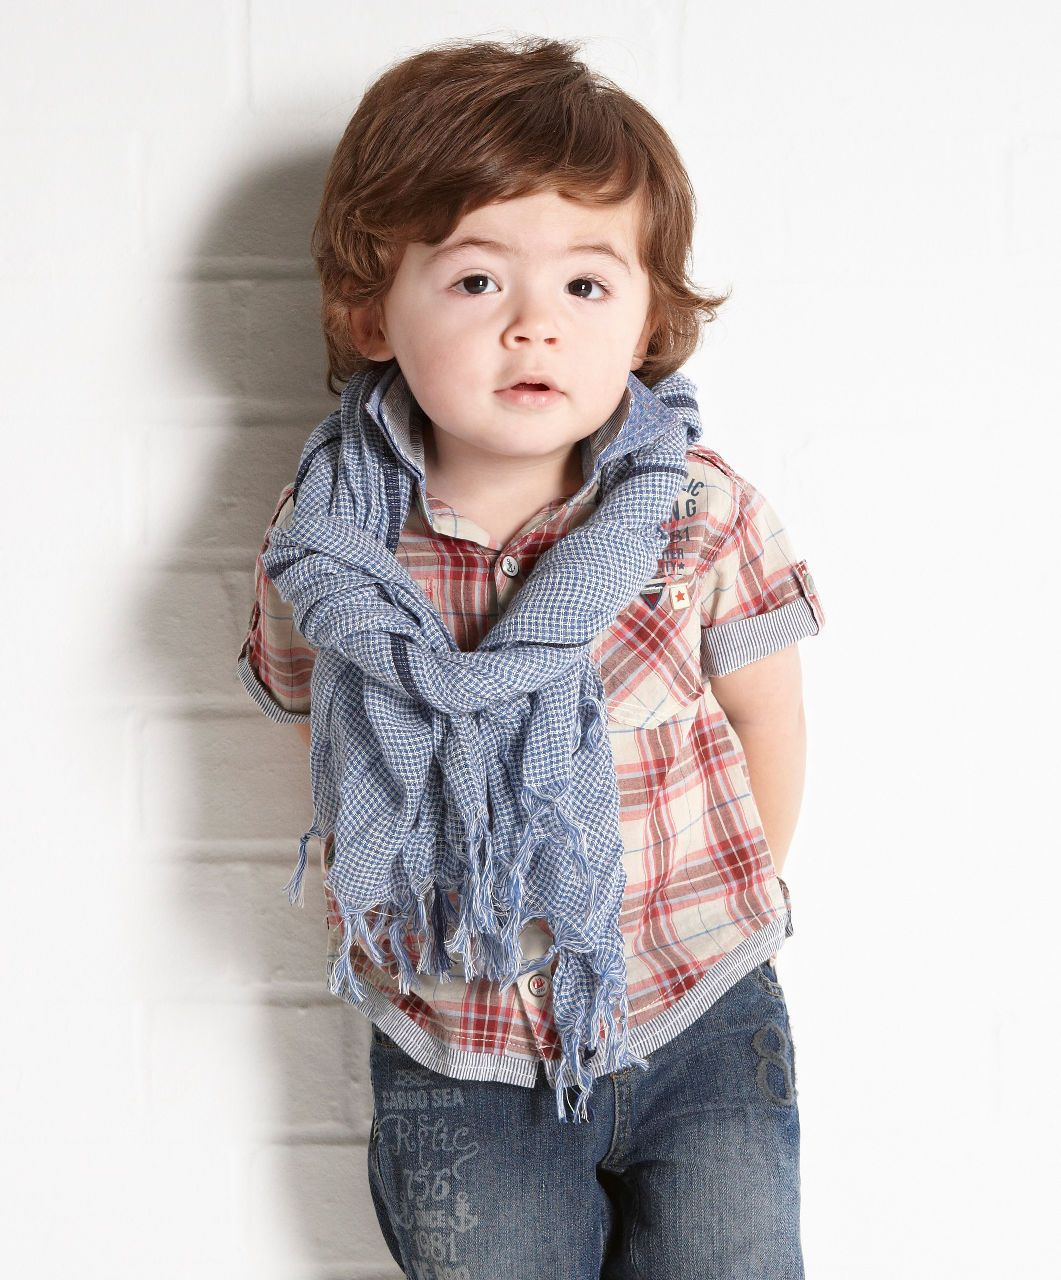 The perfect way to make his outfit even more adorable is to throw on a stylish dress shirt for toddler boys and babies available from The Children's Place.